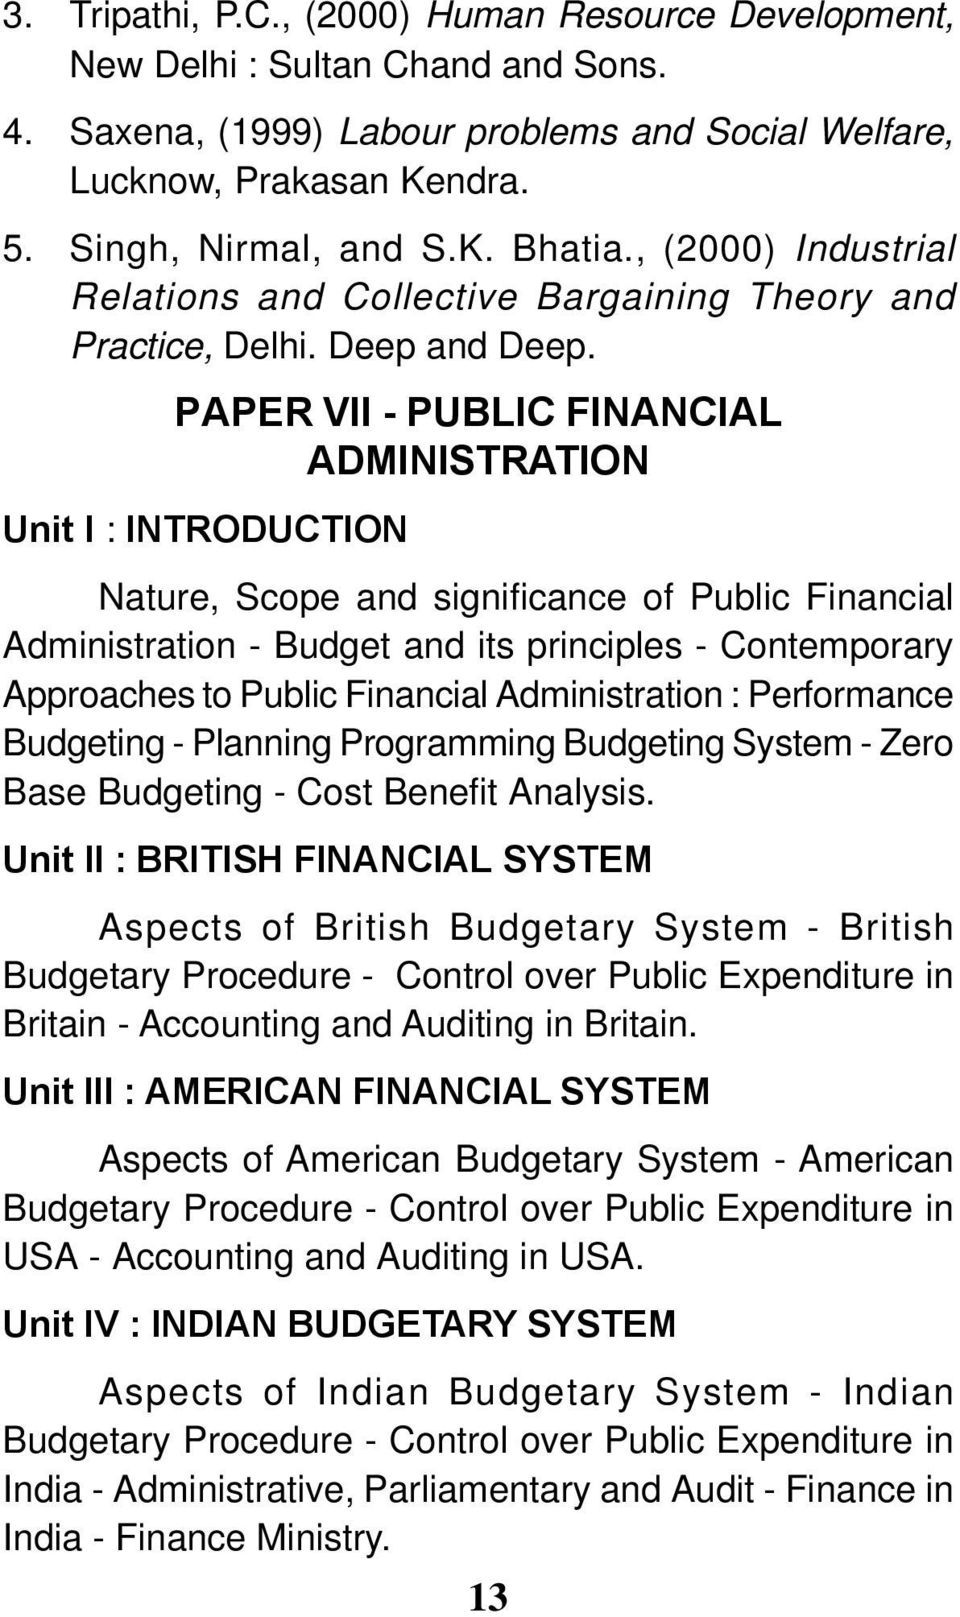 PAPER VII - PUBLIC FINANCIAL ADMINISTRATION Nature, Scope and significance of Public Financial Administration - Budget and its principles - Contemporary Approaches to Public Financial Administration